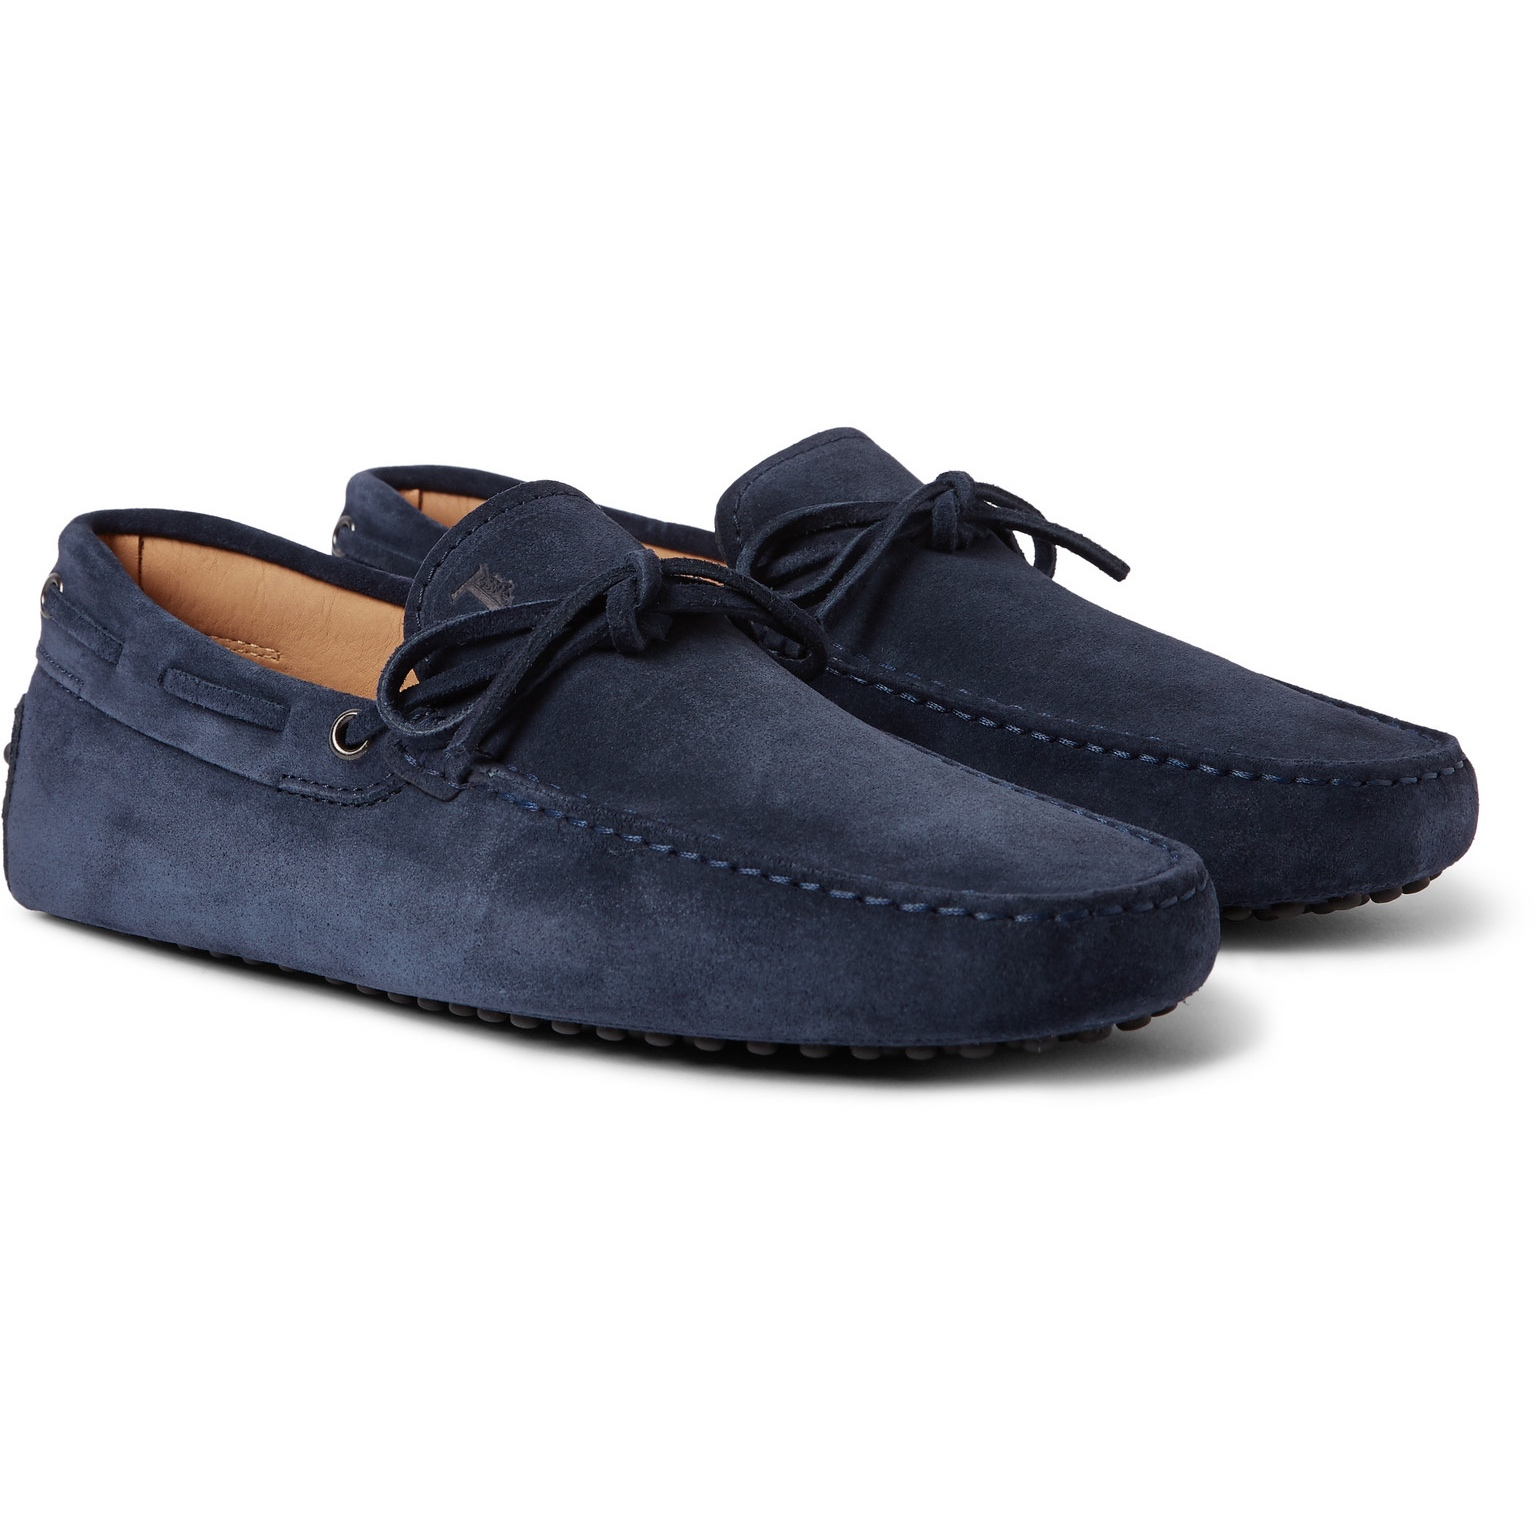 Tods Gommino Suede Leather Drivers in Navy